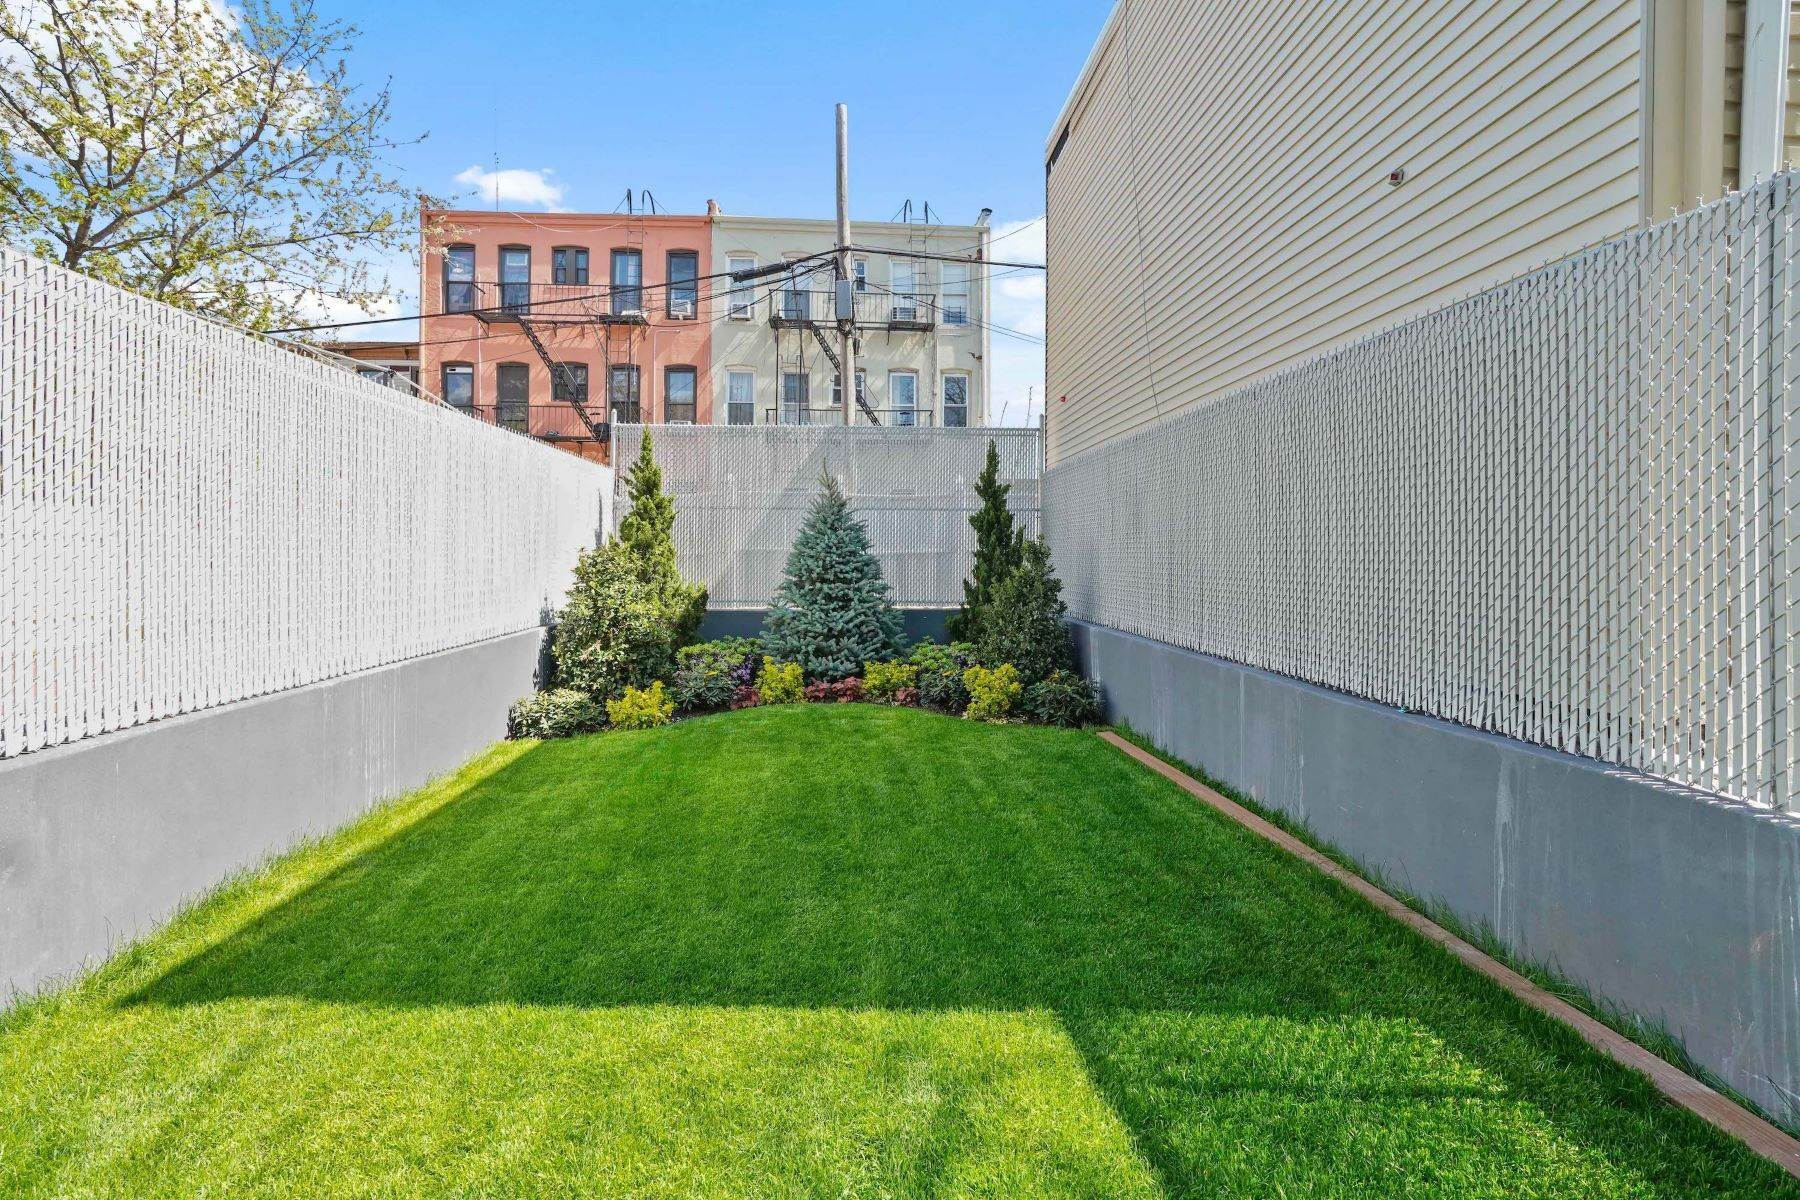 2. Condominiums for Sale at Linden Street Condominiums 400 Linden Street #Garden 400 Linden Street #Garden Brooklyn, New York 11237 United States